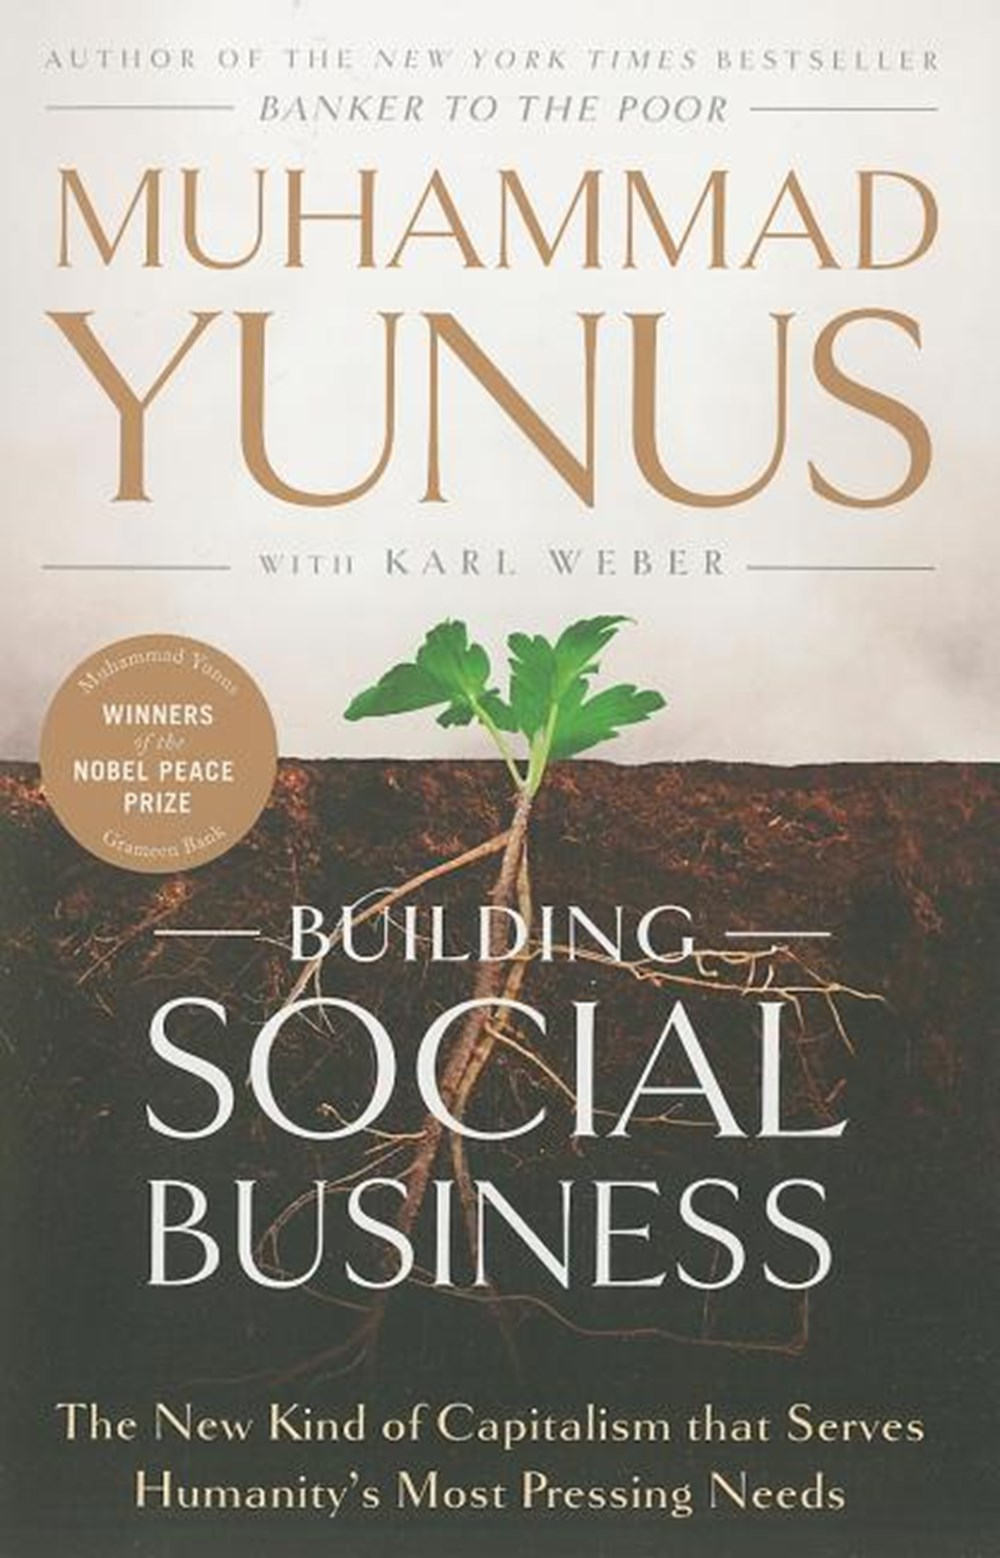 Building Social Business The New Kind of Capitalism That Serves Humanity's Most Pressing Needs